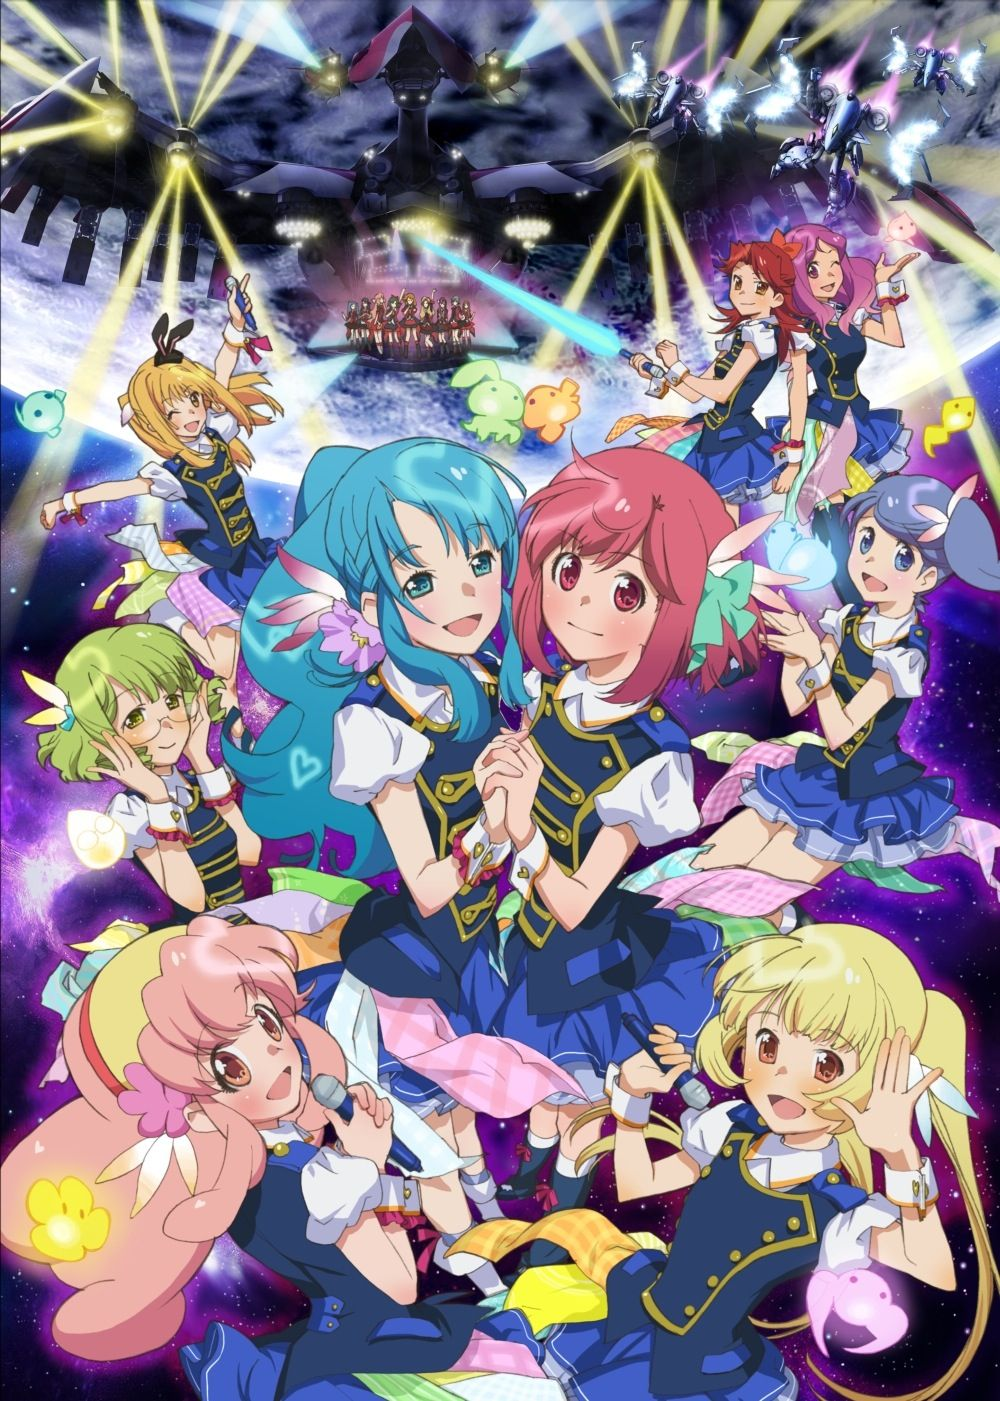 AKB0048 One of my new favorite Anime series. Anime